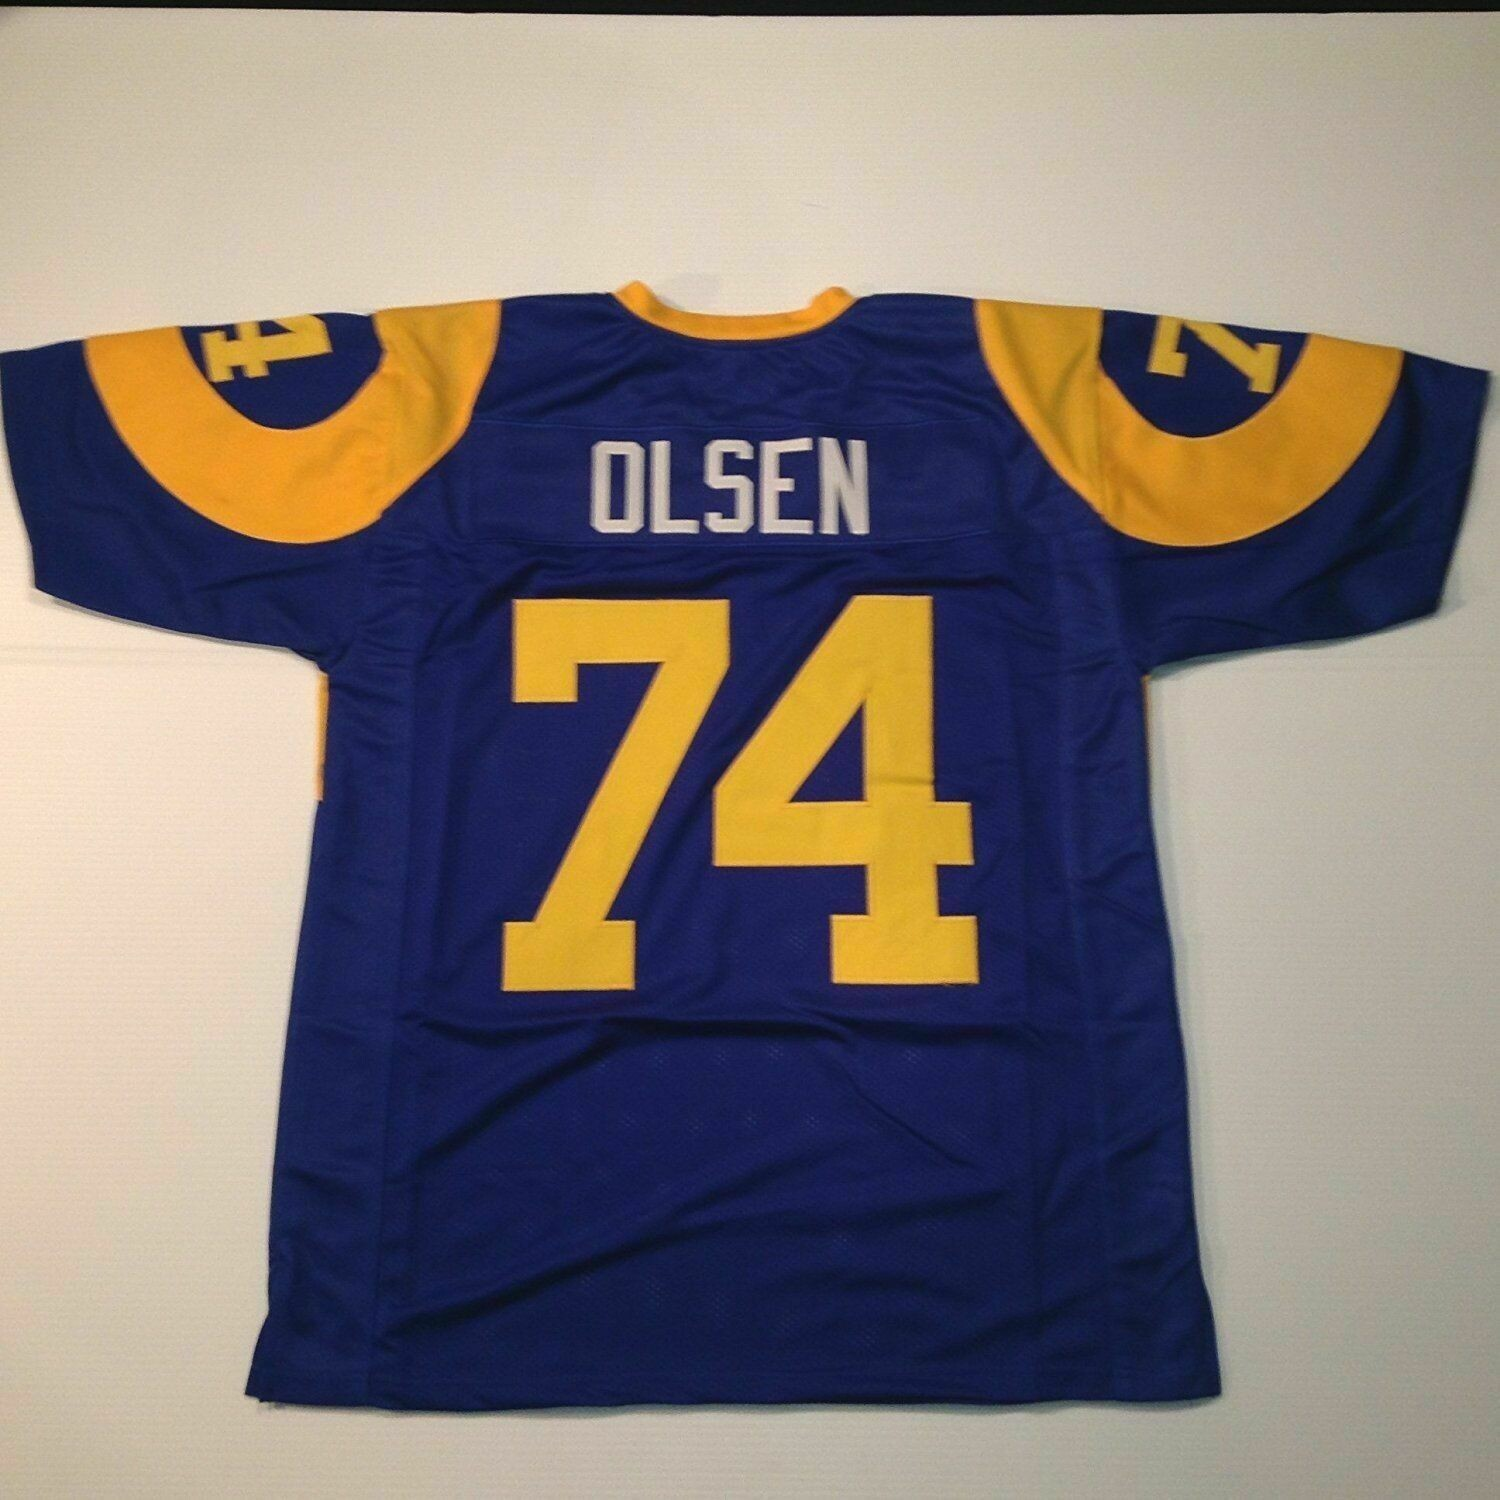 UNSIGNED CUSTOM Sewn Stitched Merlin Olsen Blue Jersey